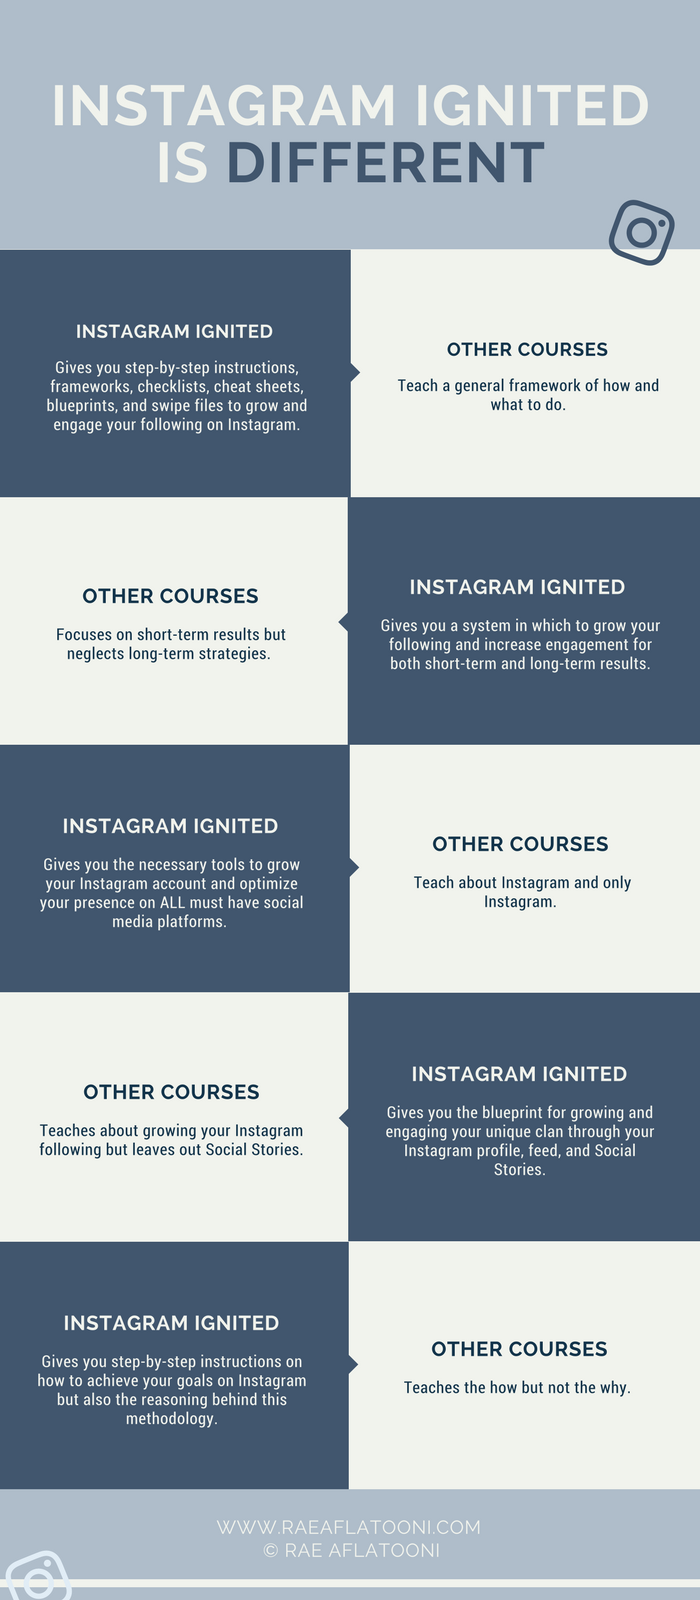 Instagram Ignited is different and this infographic shows how it compares to other courses.